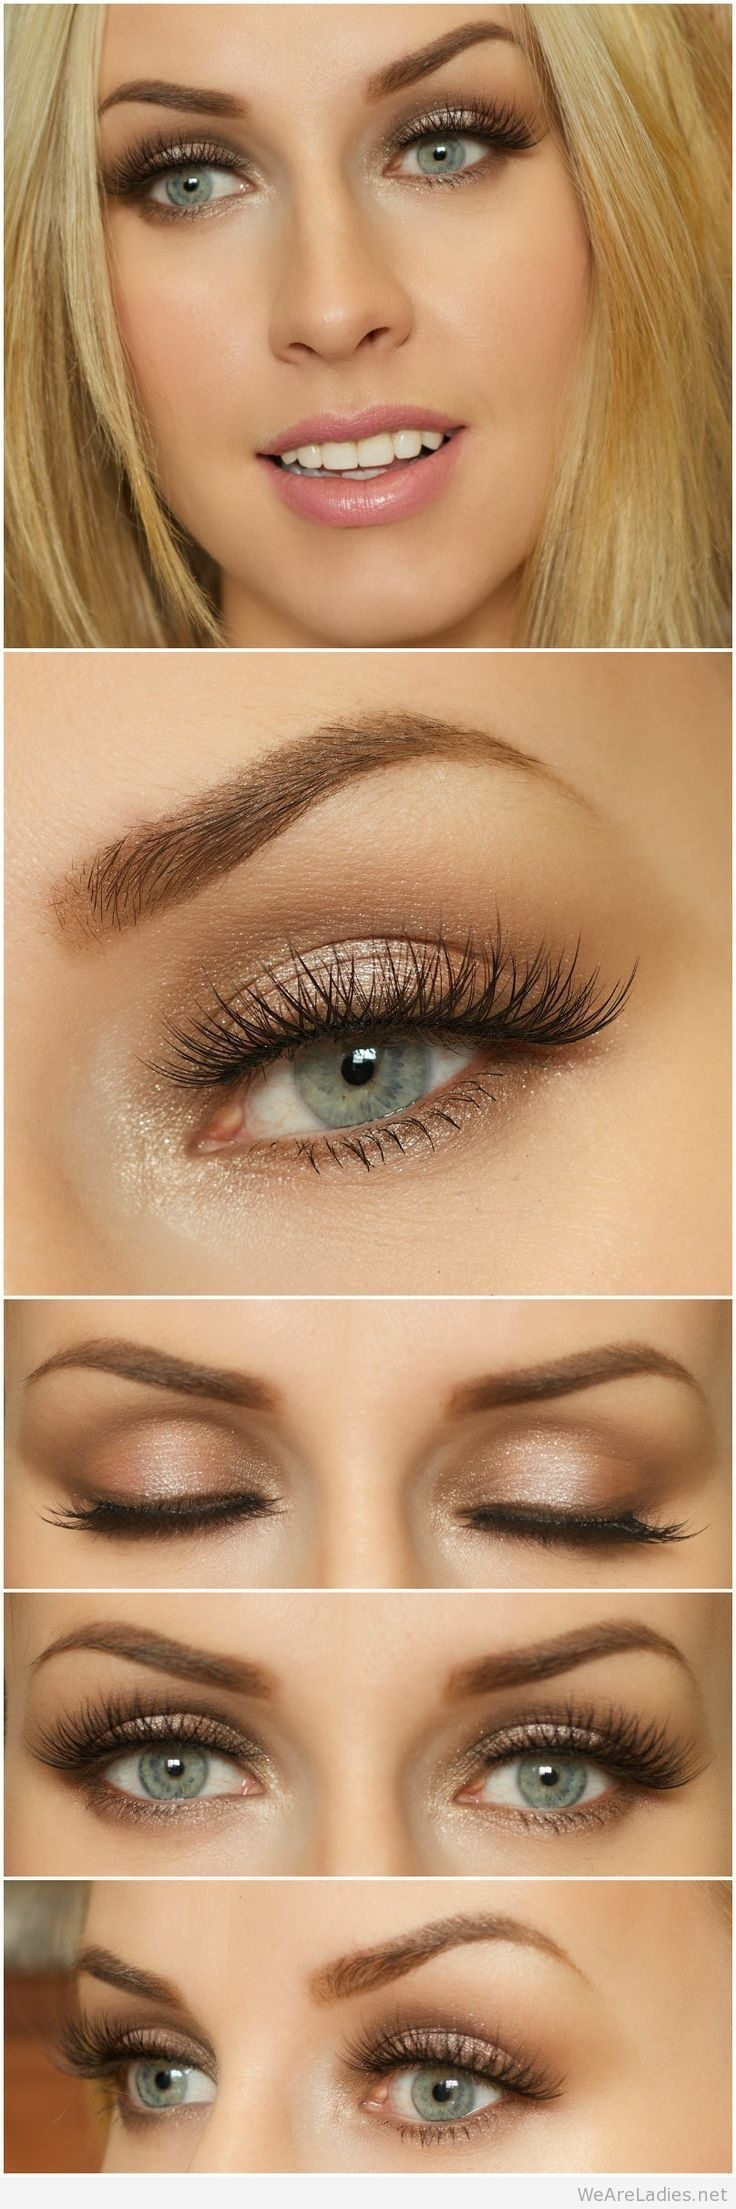 how to do eye makeup for hazel eyes and blonde hair – wavy haircut